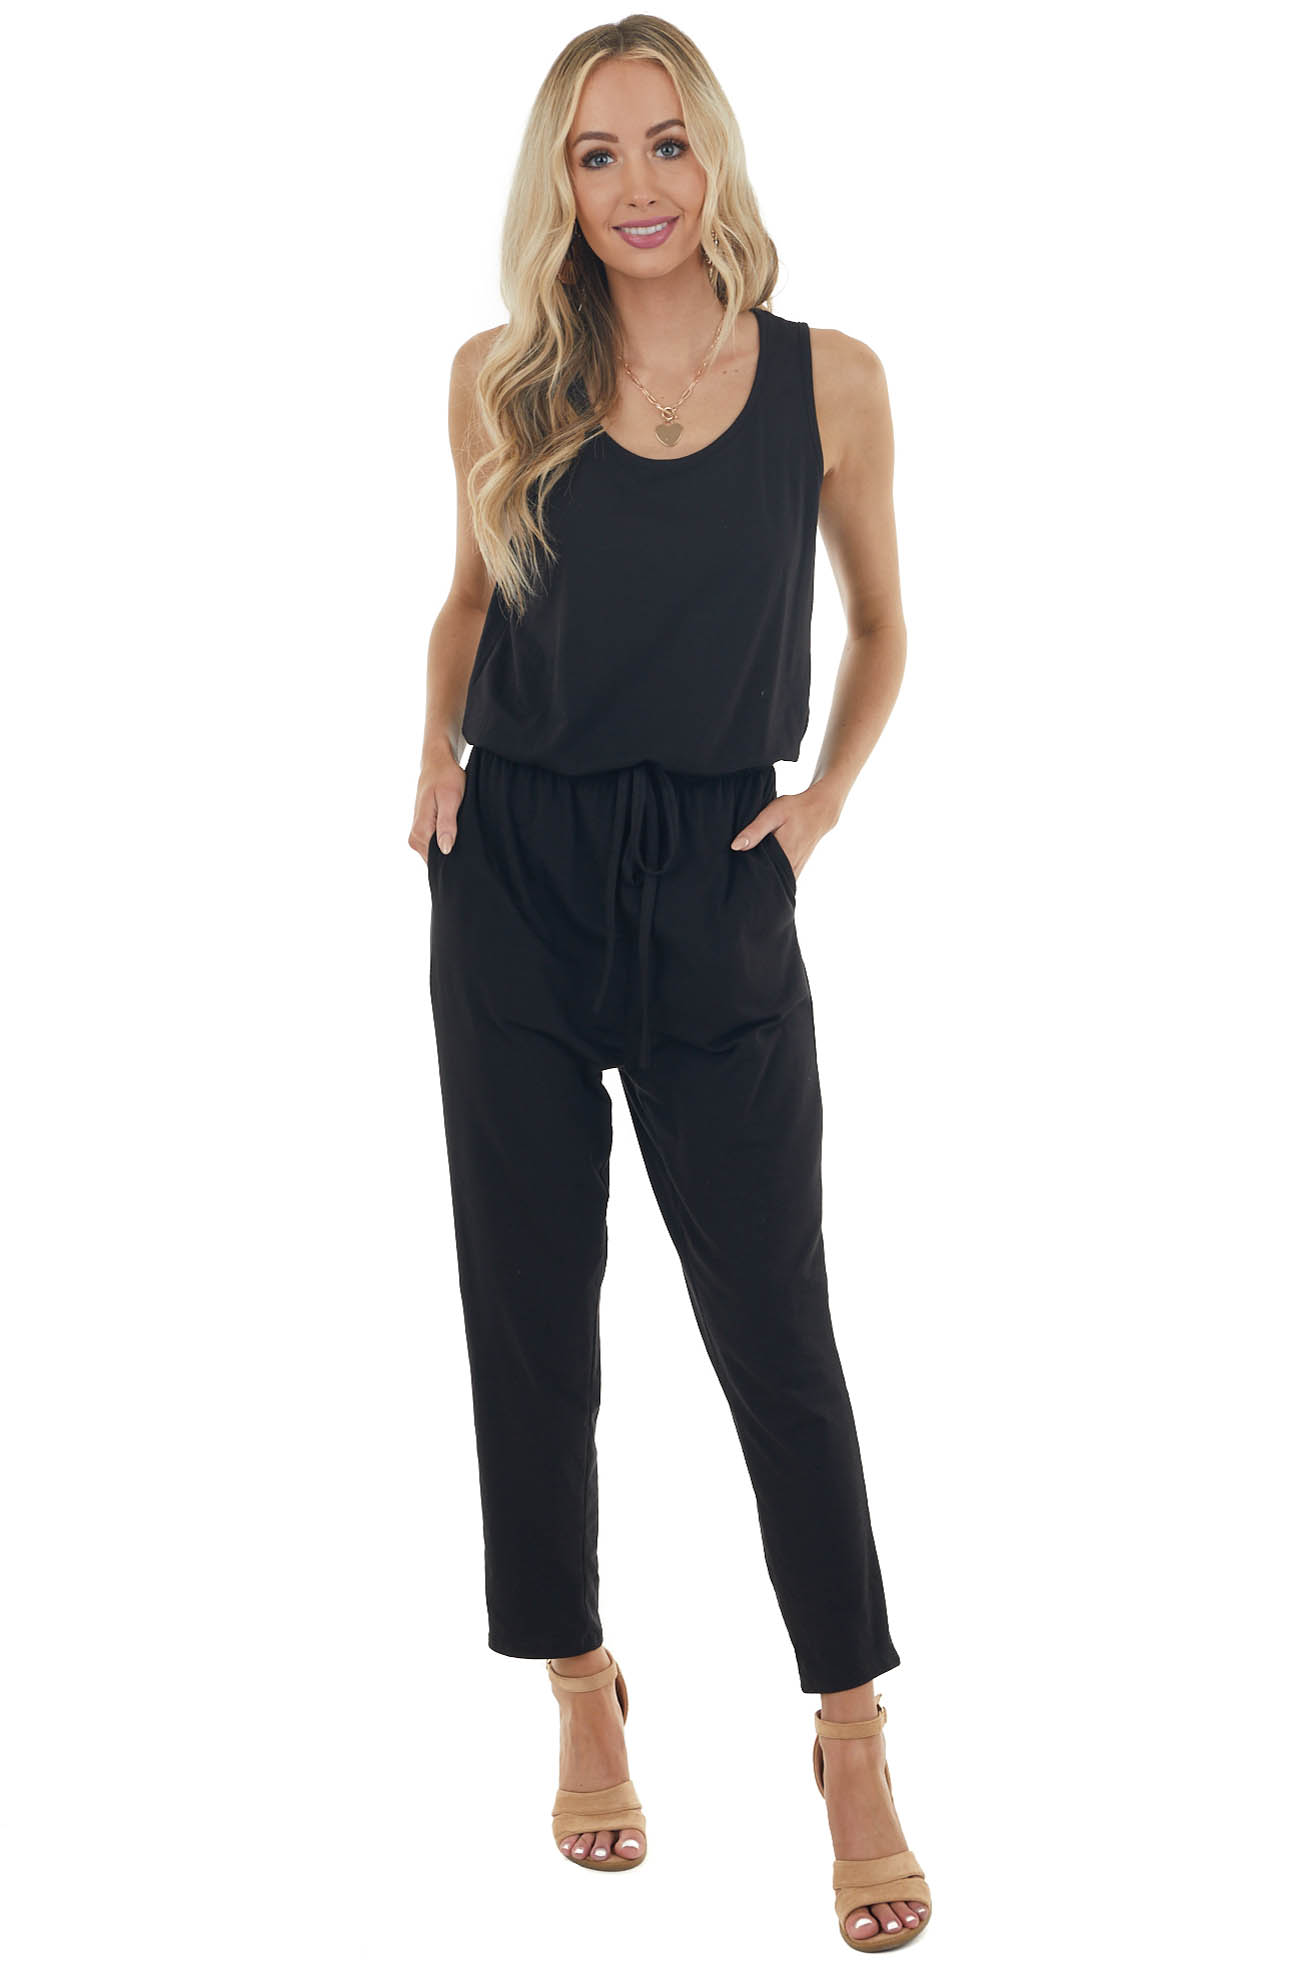 Black Sleeveless Knit Jumpsuit with Keyhole Back Detail